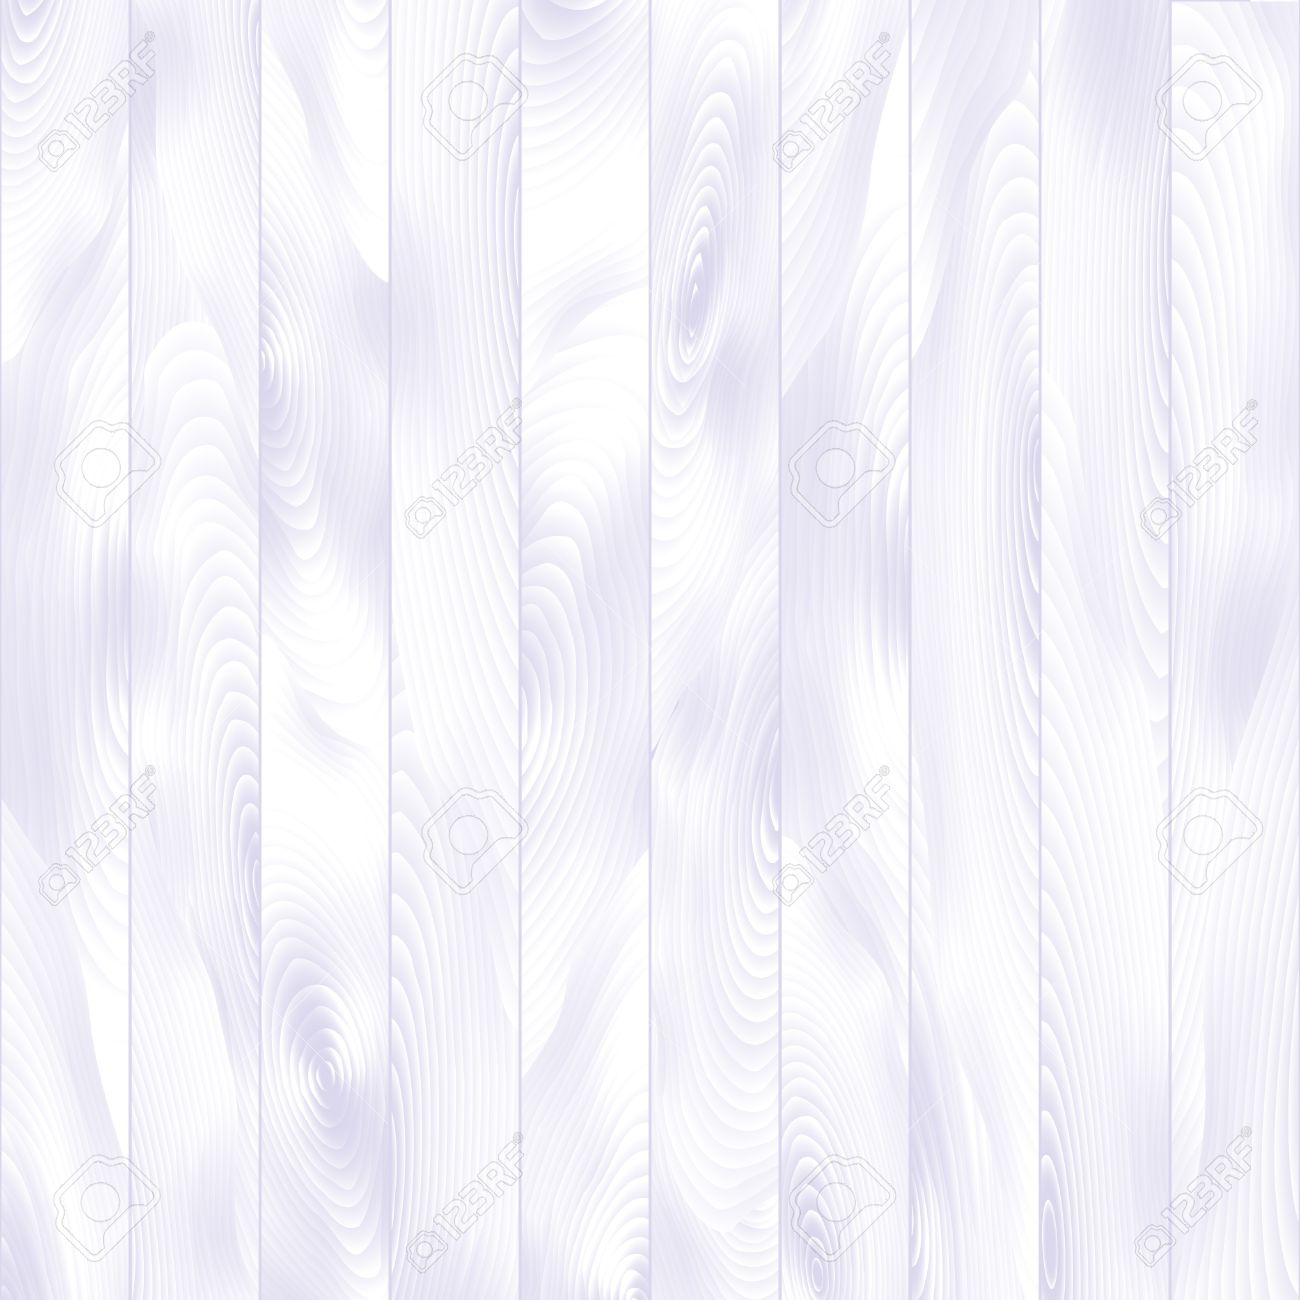 illustration of light-colored wood background pattern Stock Vector - 18569459